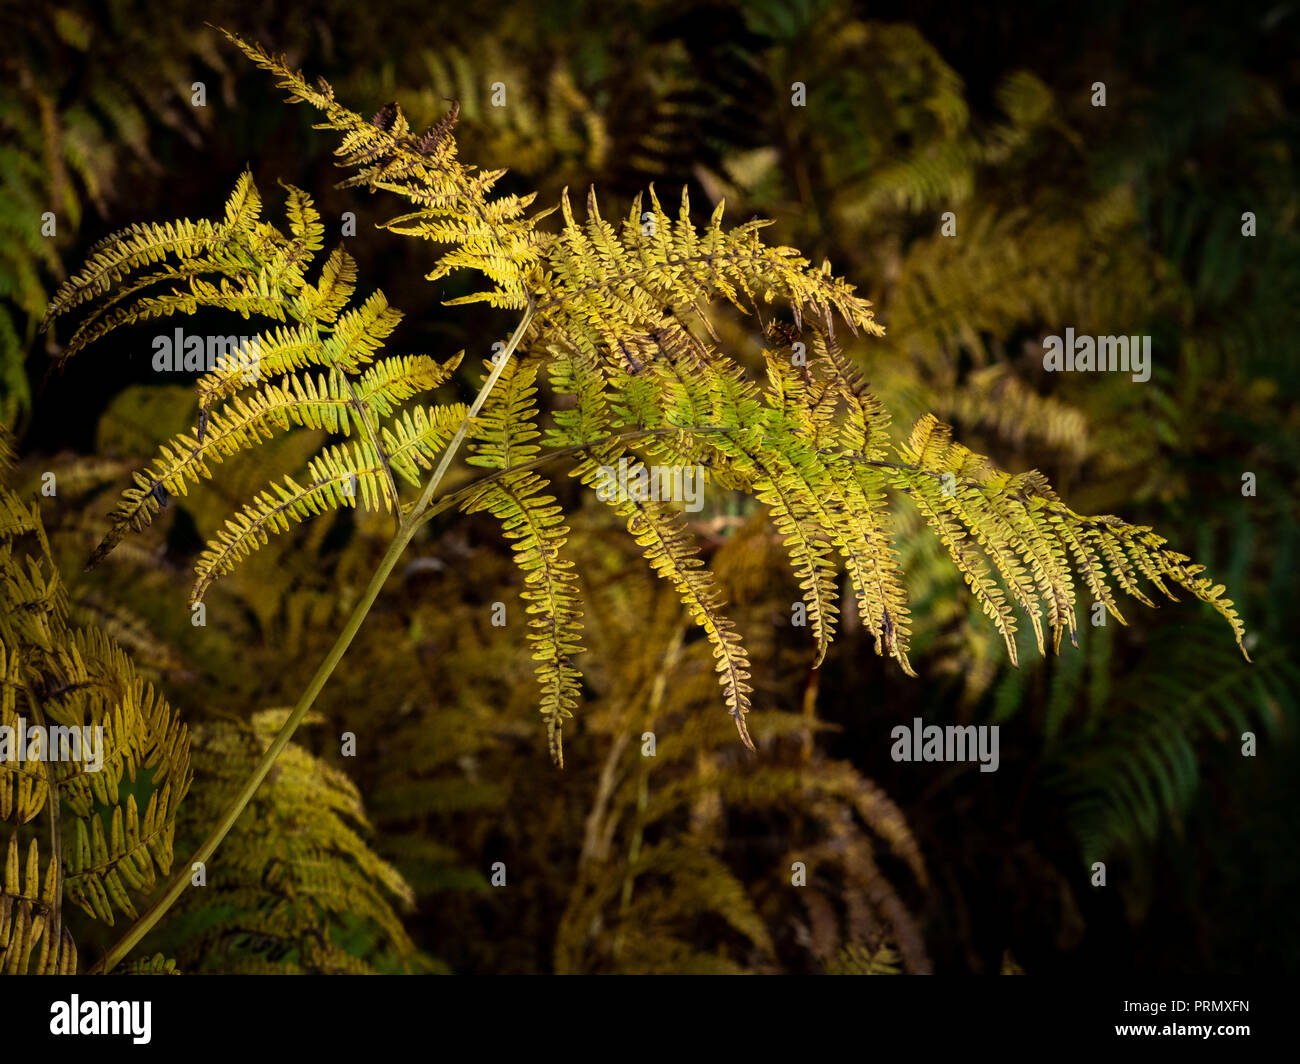 In late summer early autumn the bracken (Pteridium aquilinum) starts to turn first a beautiful golden colour and then then brown. Stock Photo